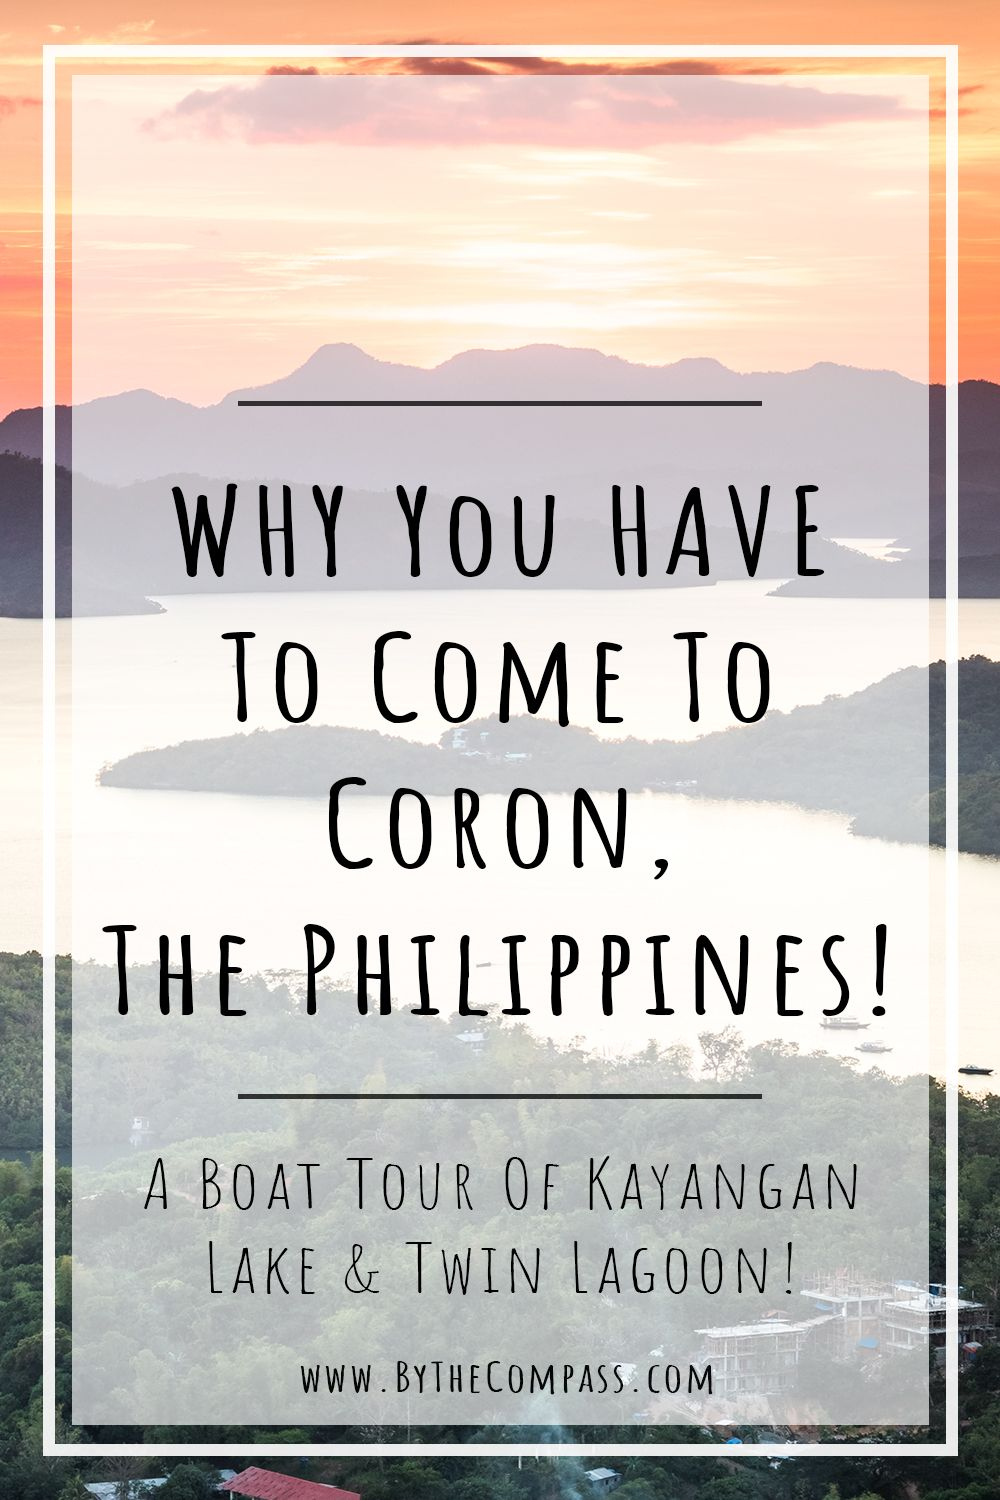 There are few places on Earth more stunning than The Philippines, and Coron in particular! Turquoise pools, colourful coral reefs, bone-white beaches, a dense tropical jungle and amazing mountains! This blog post will tell you where to go, what to do and why you should visit Coron, Palawan! #BeTheChange #TravelBlog #Travel #Philippines #ThePhilippines #Asia #TravelAsia #TravelPhotography #traveltips #travelinspo #travelinspiration #SlowTravel #ResponsibleTravel #EcoConsciousTravel #EcoTravel